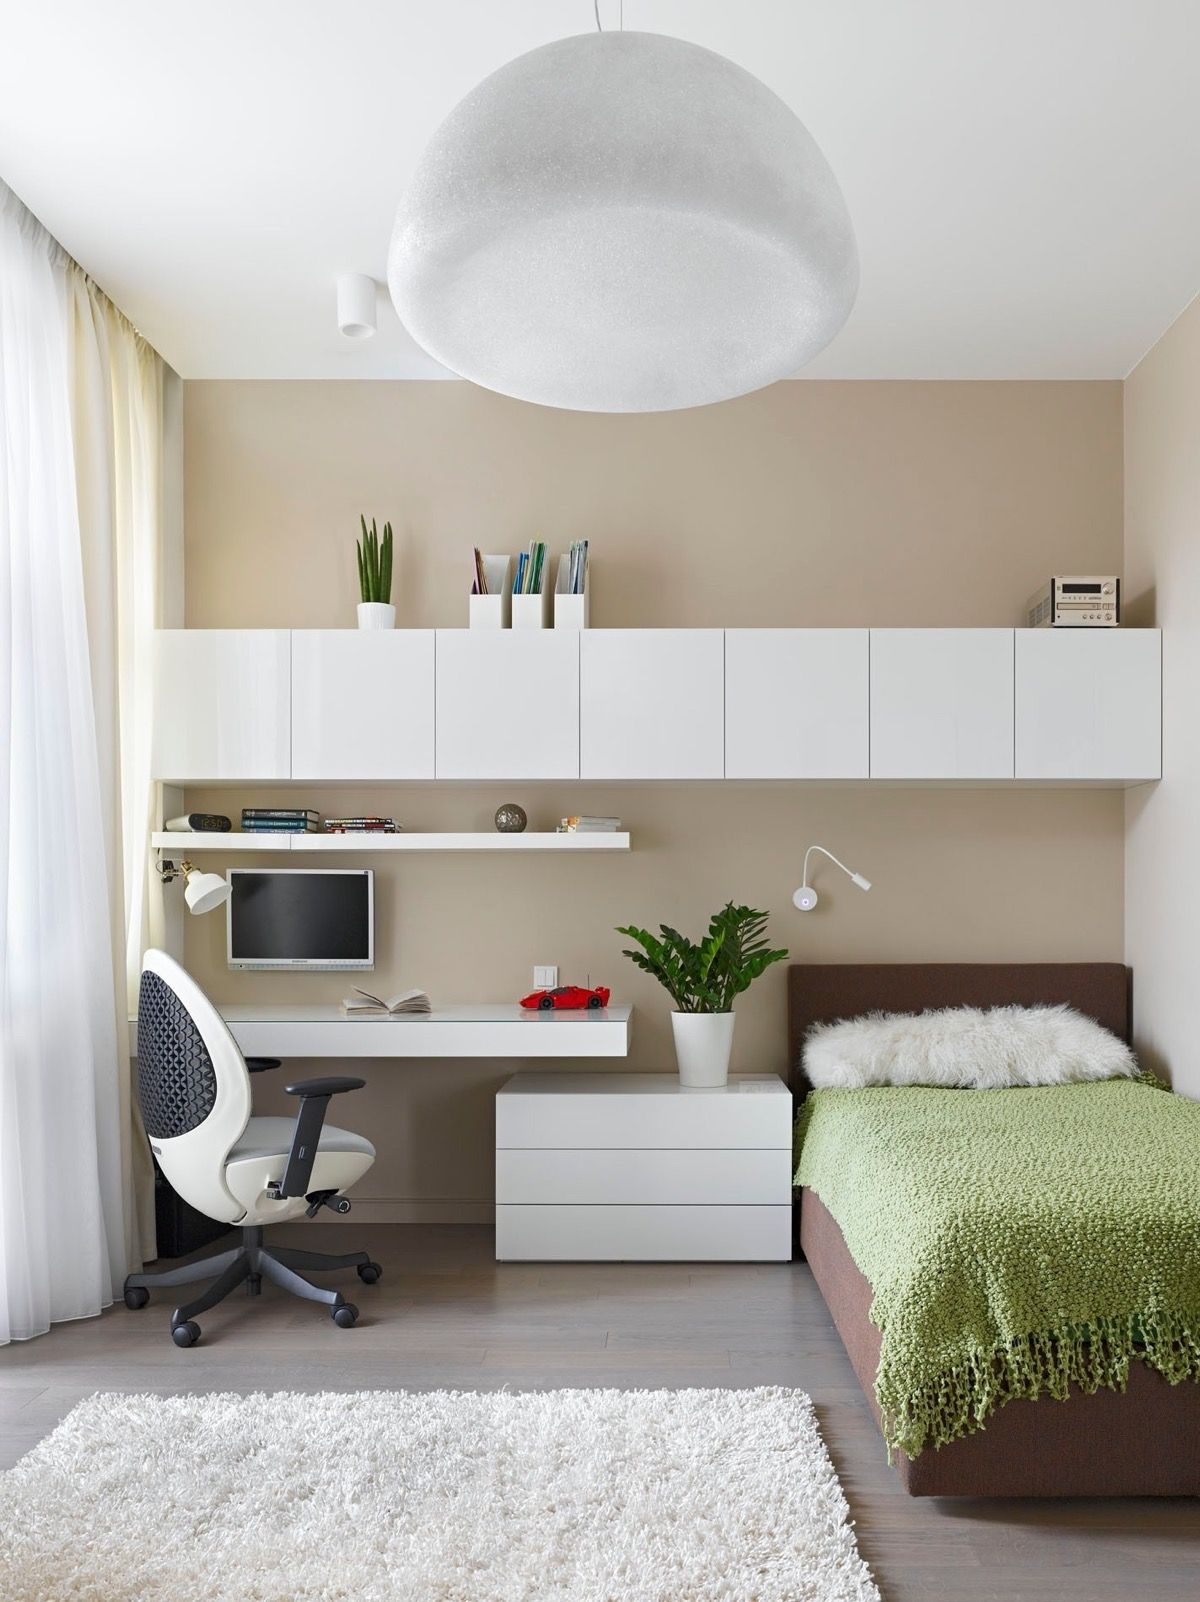 30+ Study Room Design Ideas (Guide & Tips for decorating a study Room images